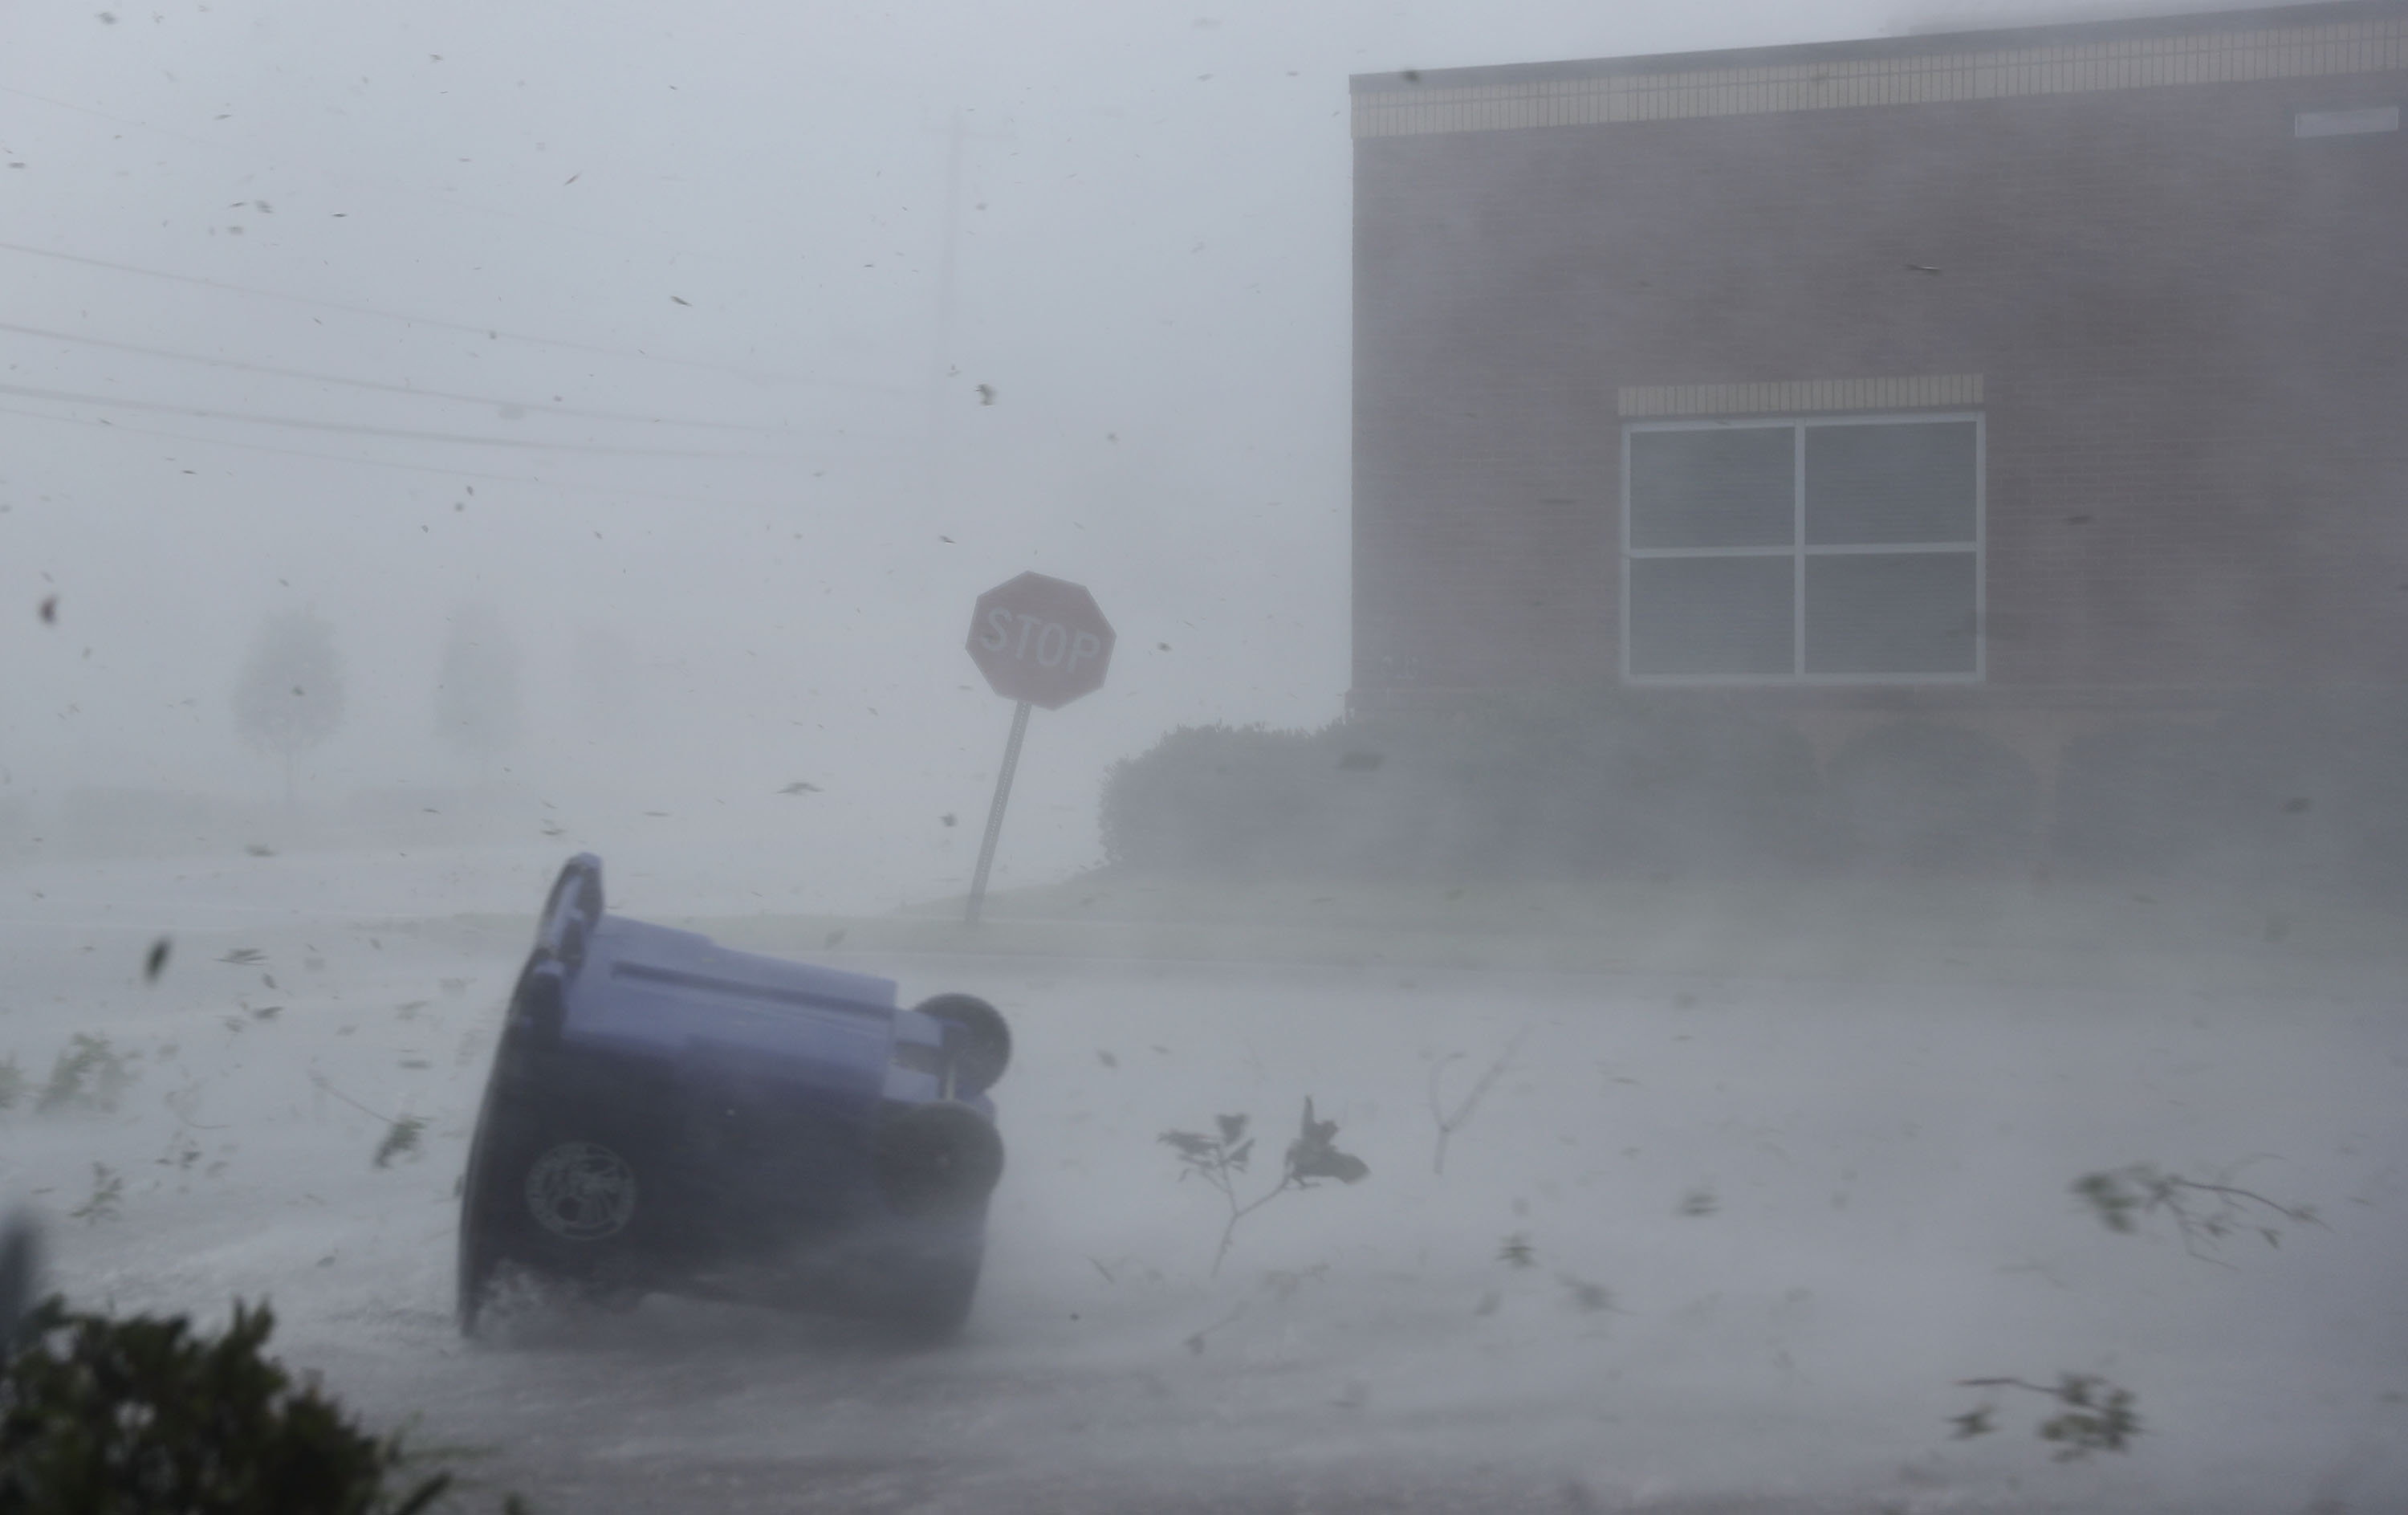 A trash can and debris are blown down a street by Hurricane Michael on October 10, 2018 in Panama City, Florida. The hurricane made landfall on the Florida Panhandle as a category 4 storm.